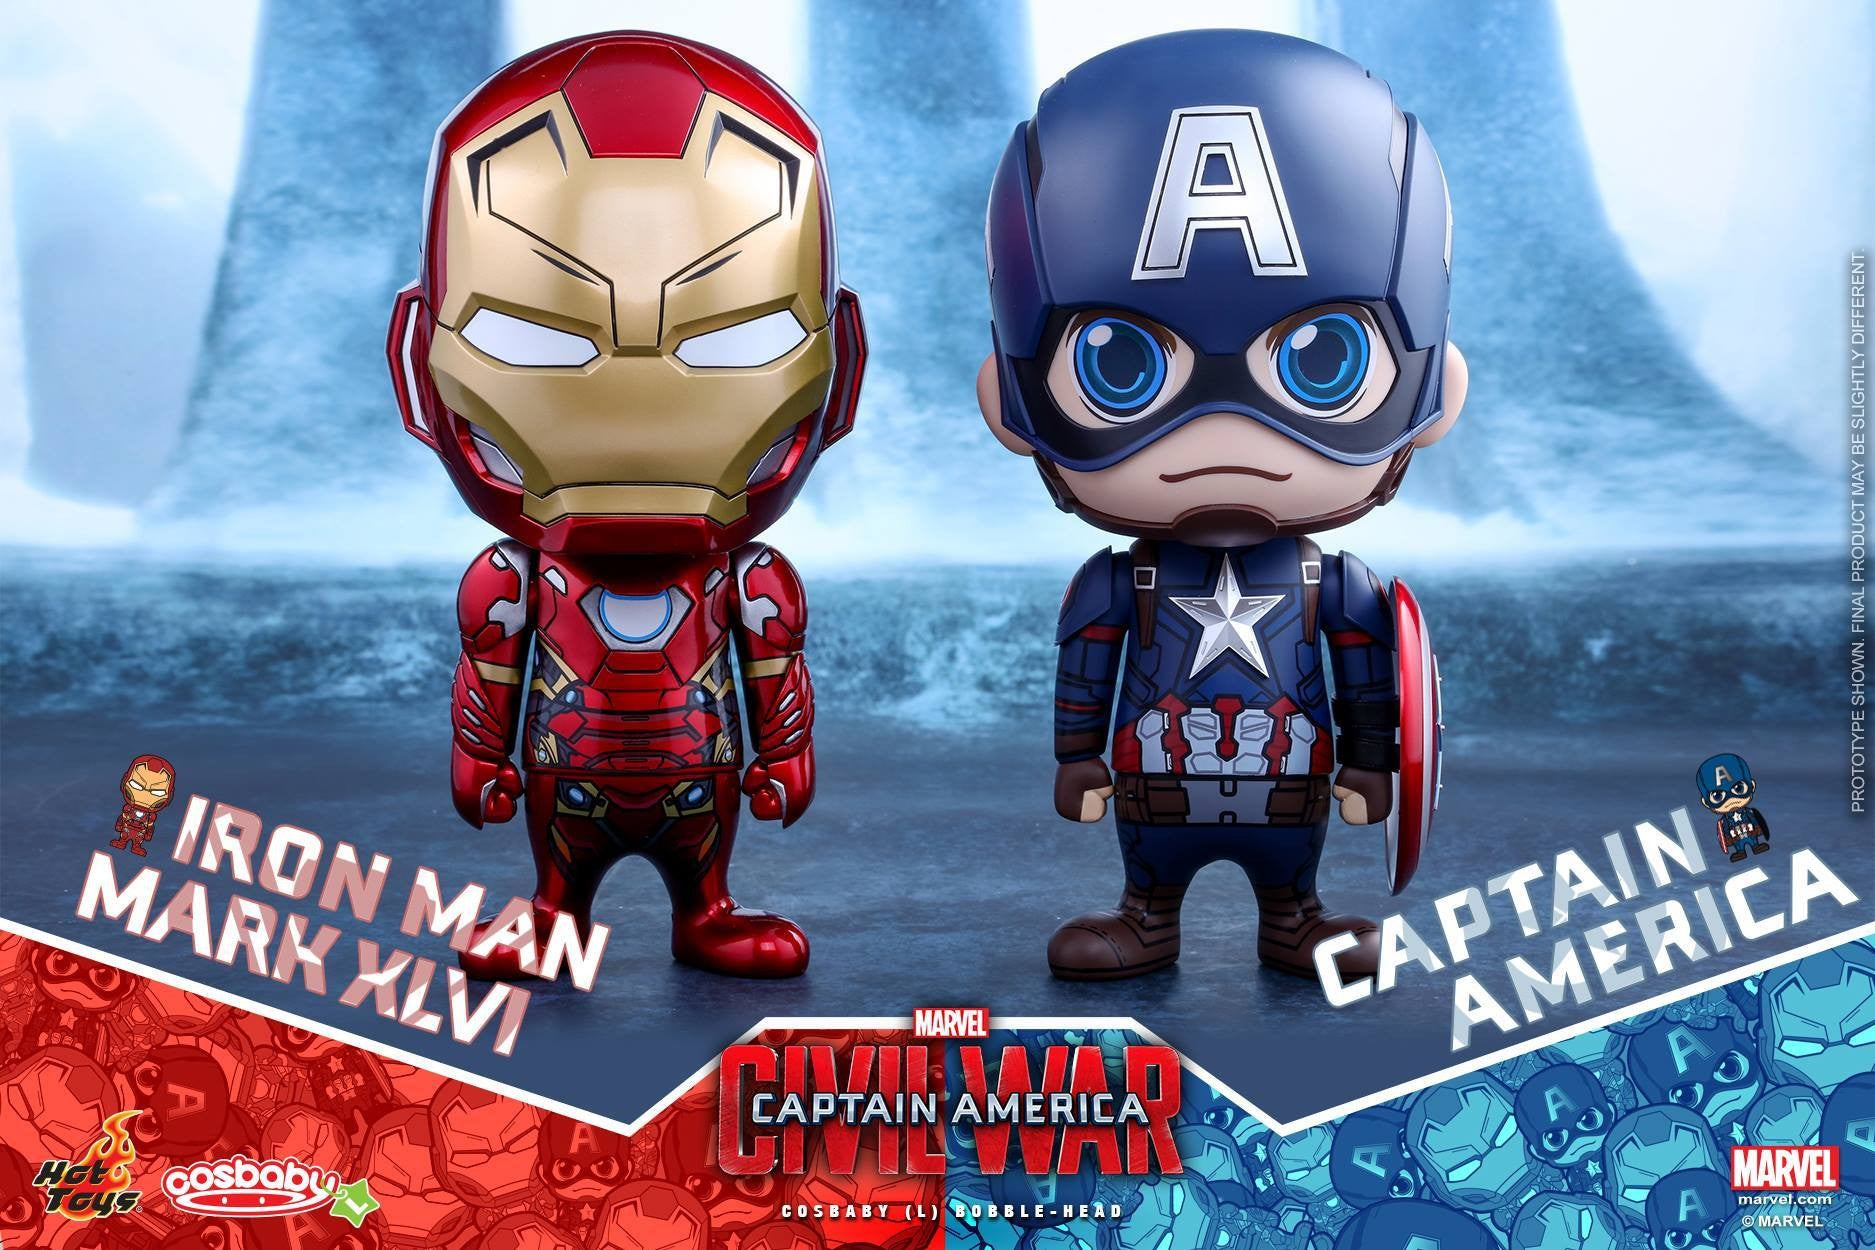 Hot Toys - COSB323 - Captain America: Civil War - Captain America Cosbaby (L) Bobble-Head - Marvelous Toys - 5